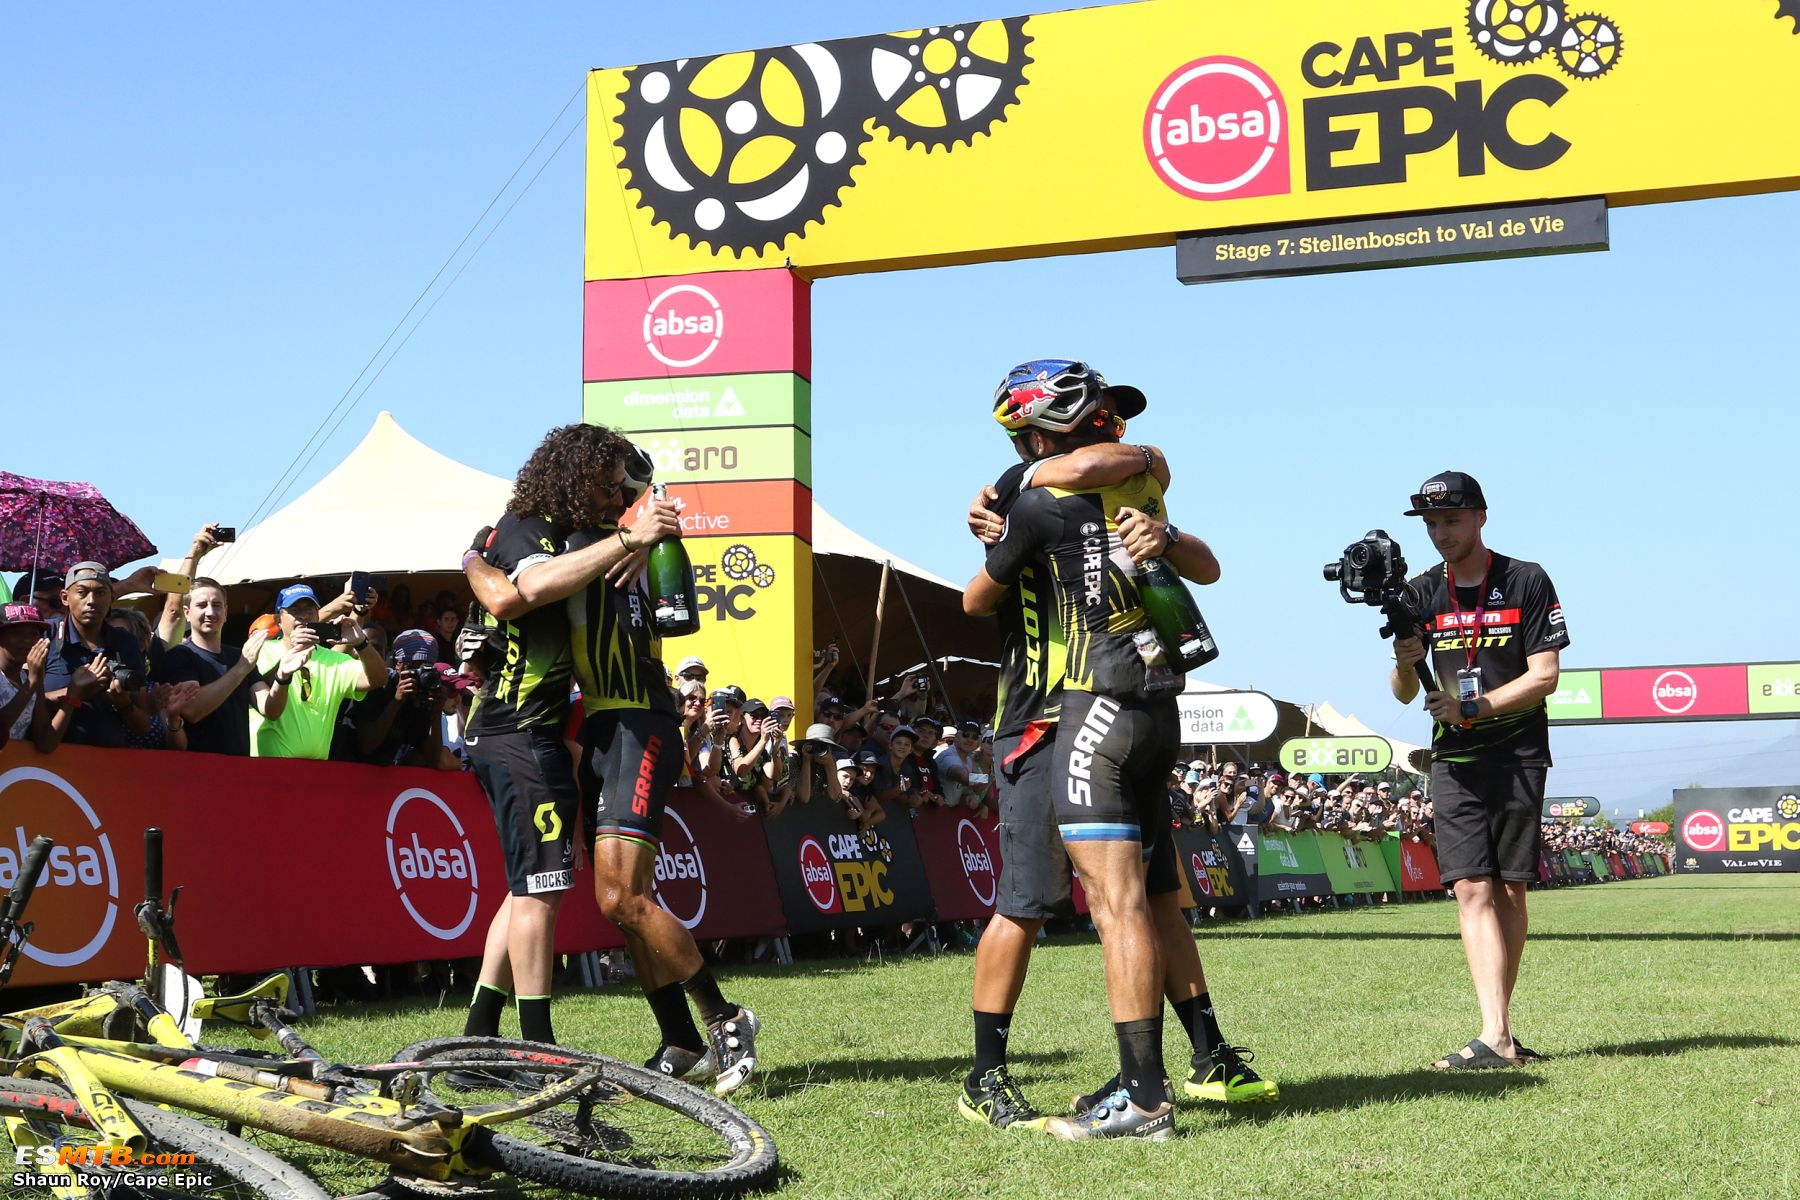 Absa Cape Epic - Etapa 7